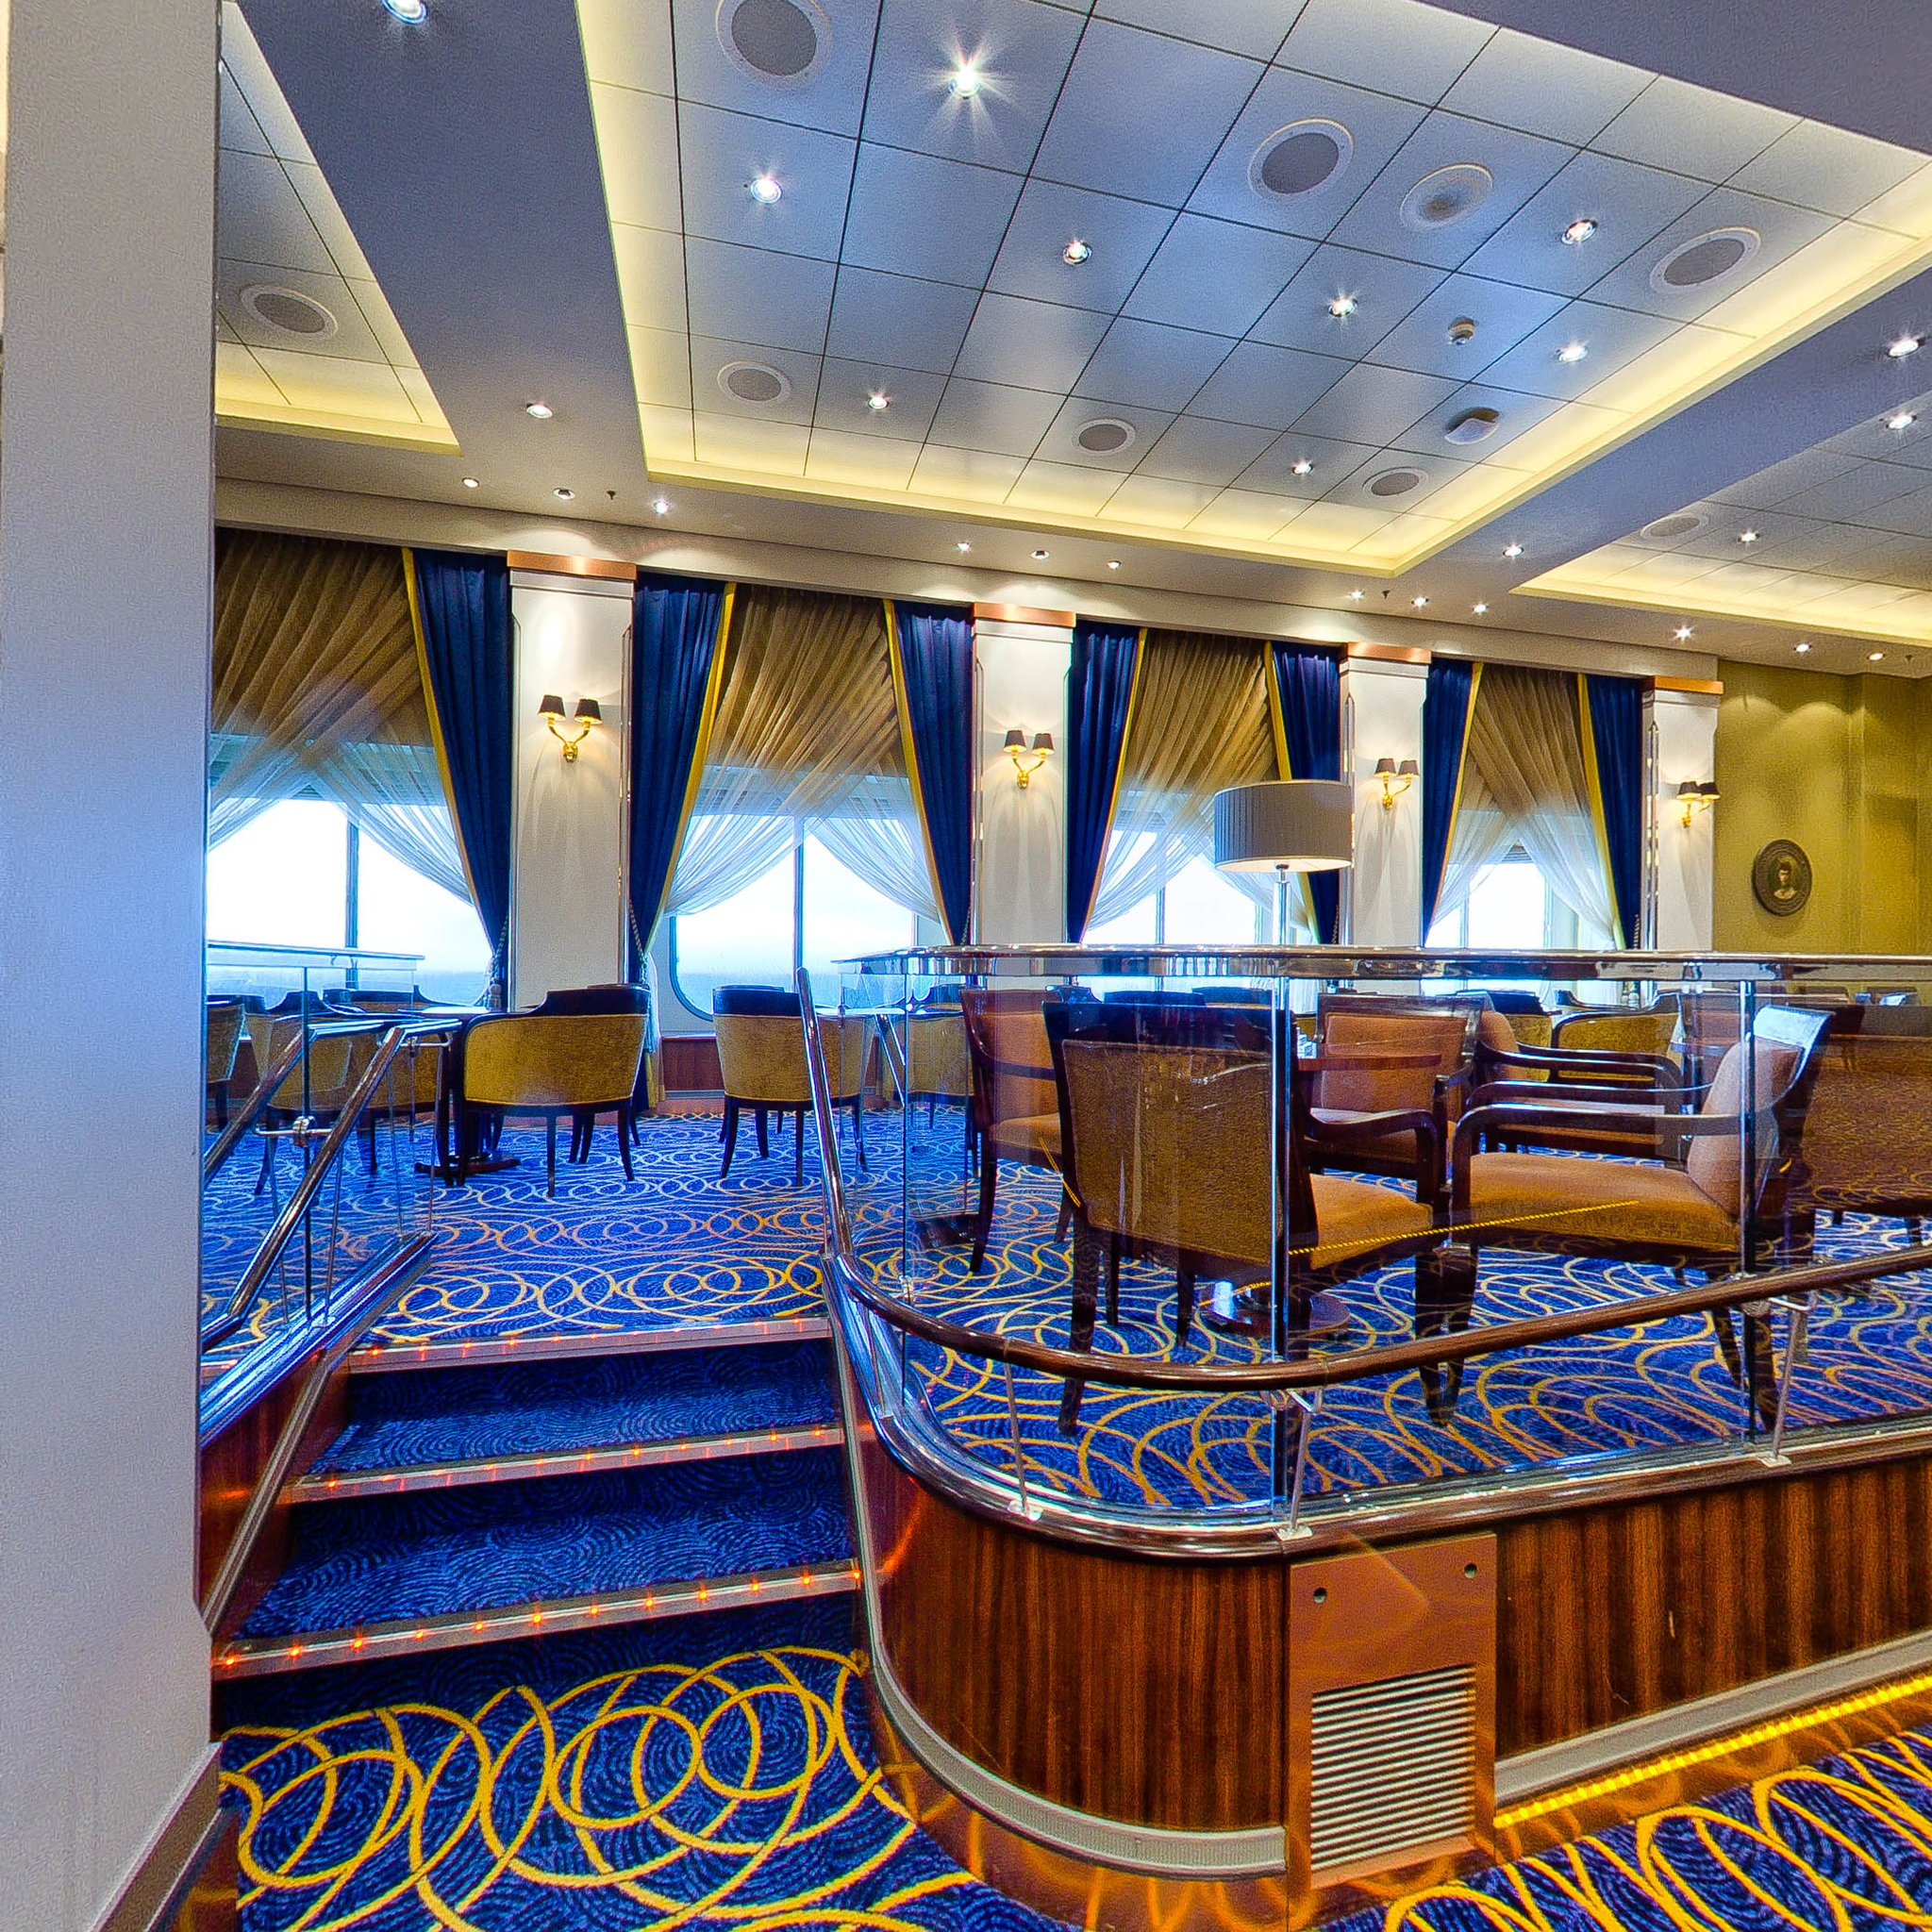 Panorama of Queens Room on Queen Mary 2 (QM2)